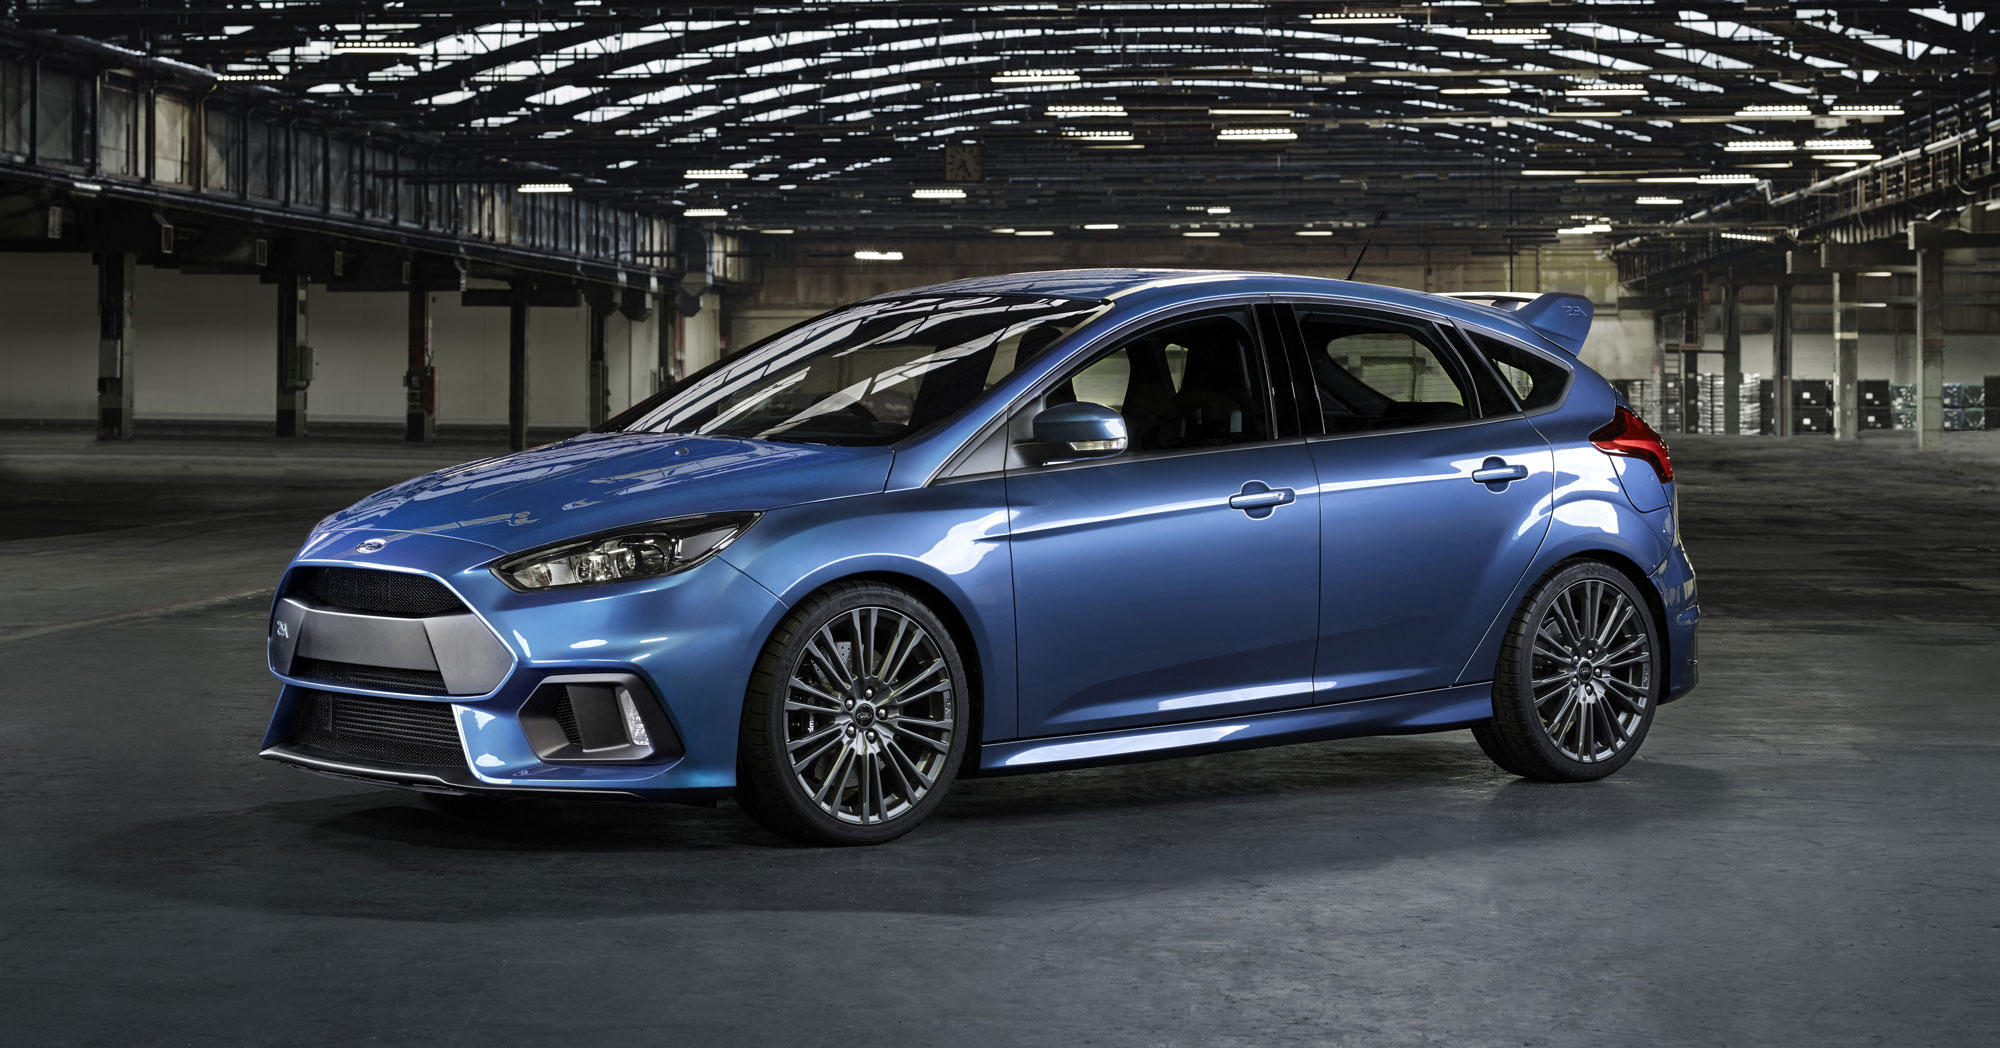 Ford Focus Rs Rx >> Focus RS RX Ken Block – Kustomeka